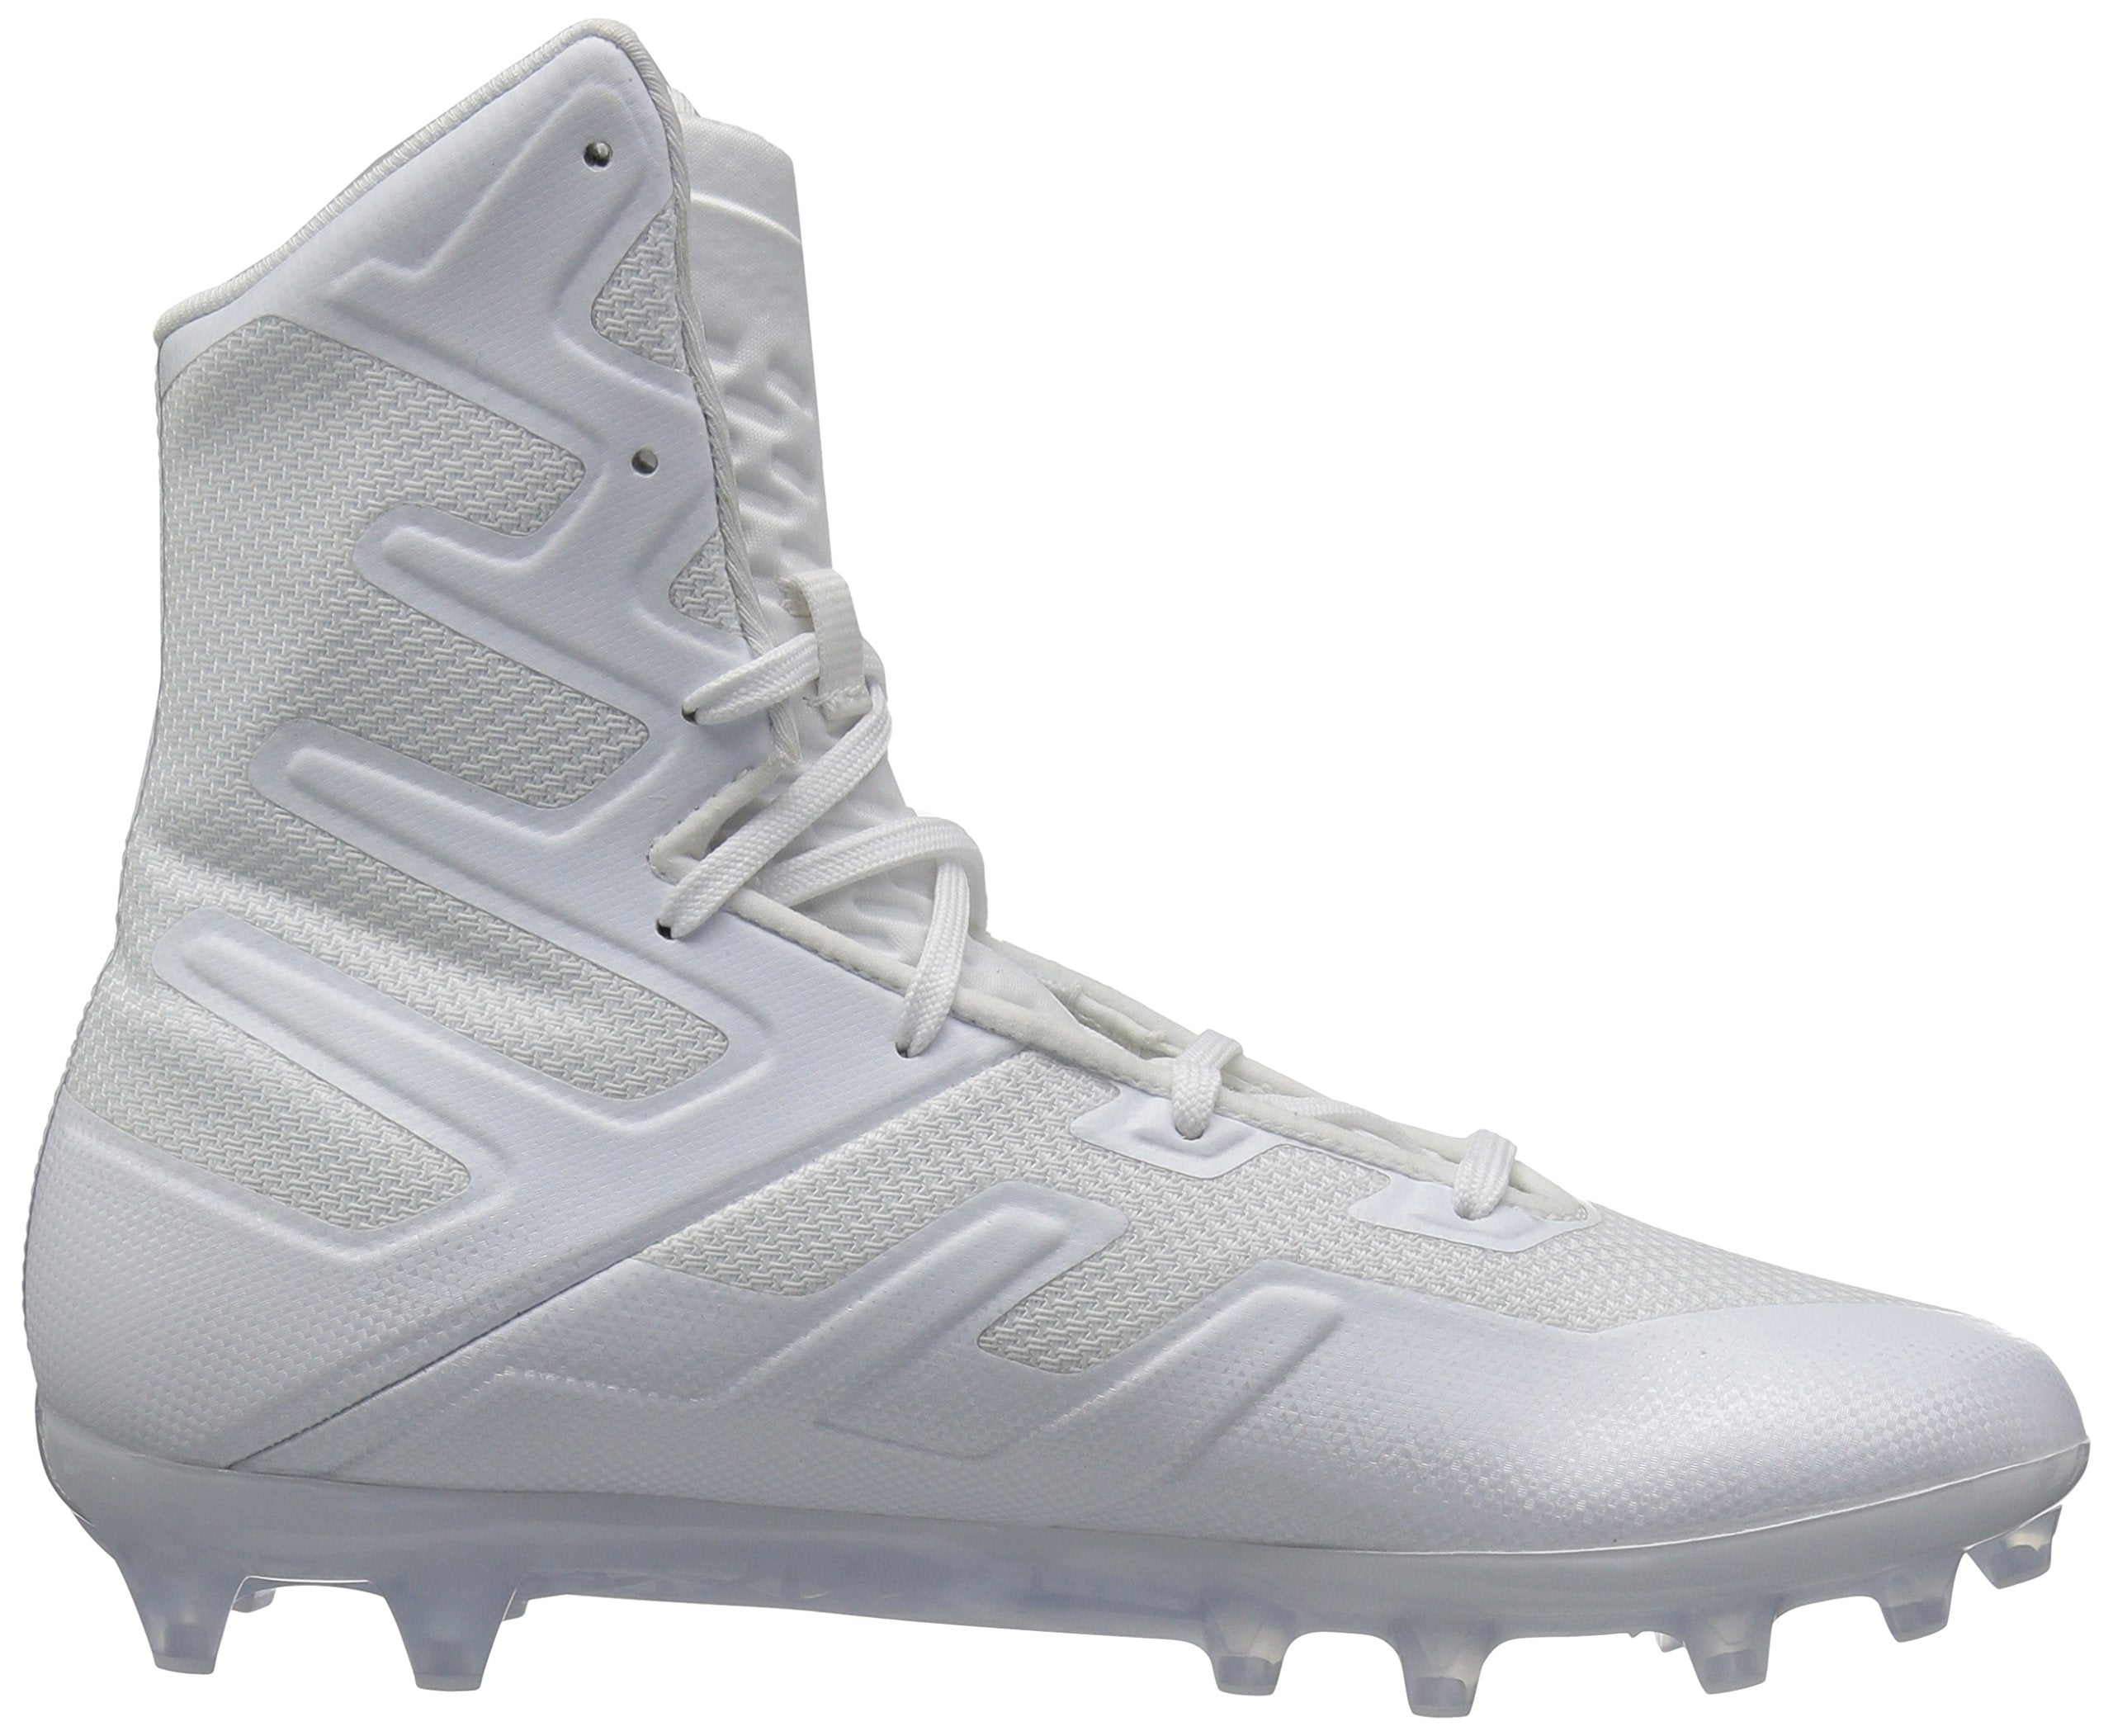 Under Armour Men's Highlight MC Football Shoe, 100/White,most sizes available - Ctfitnesswear